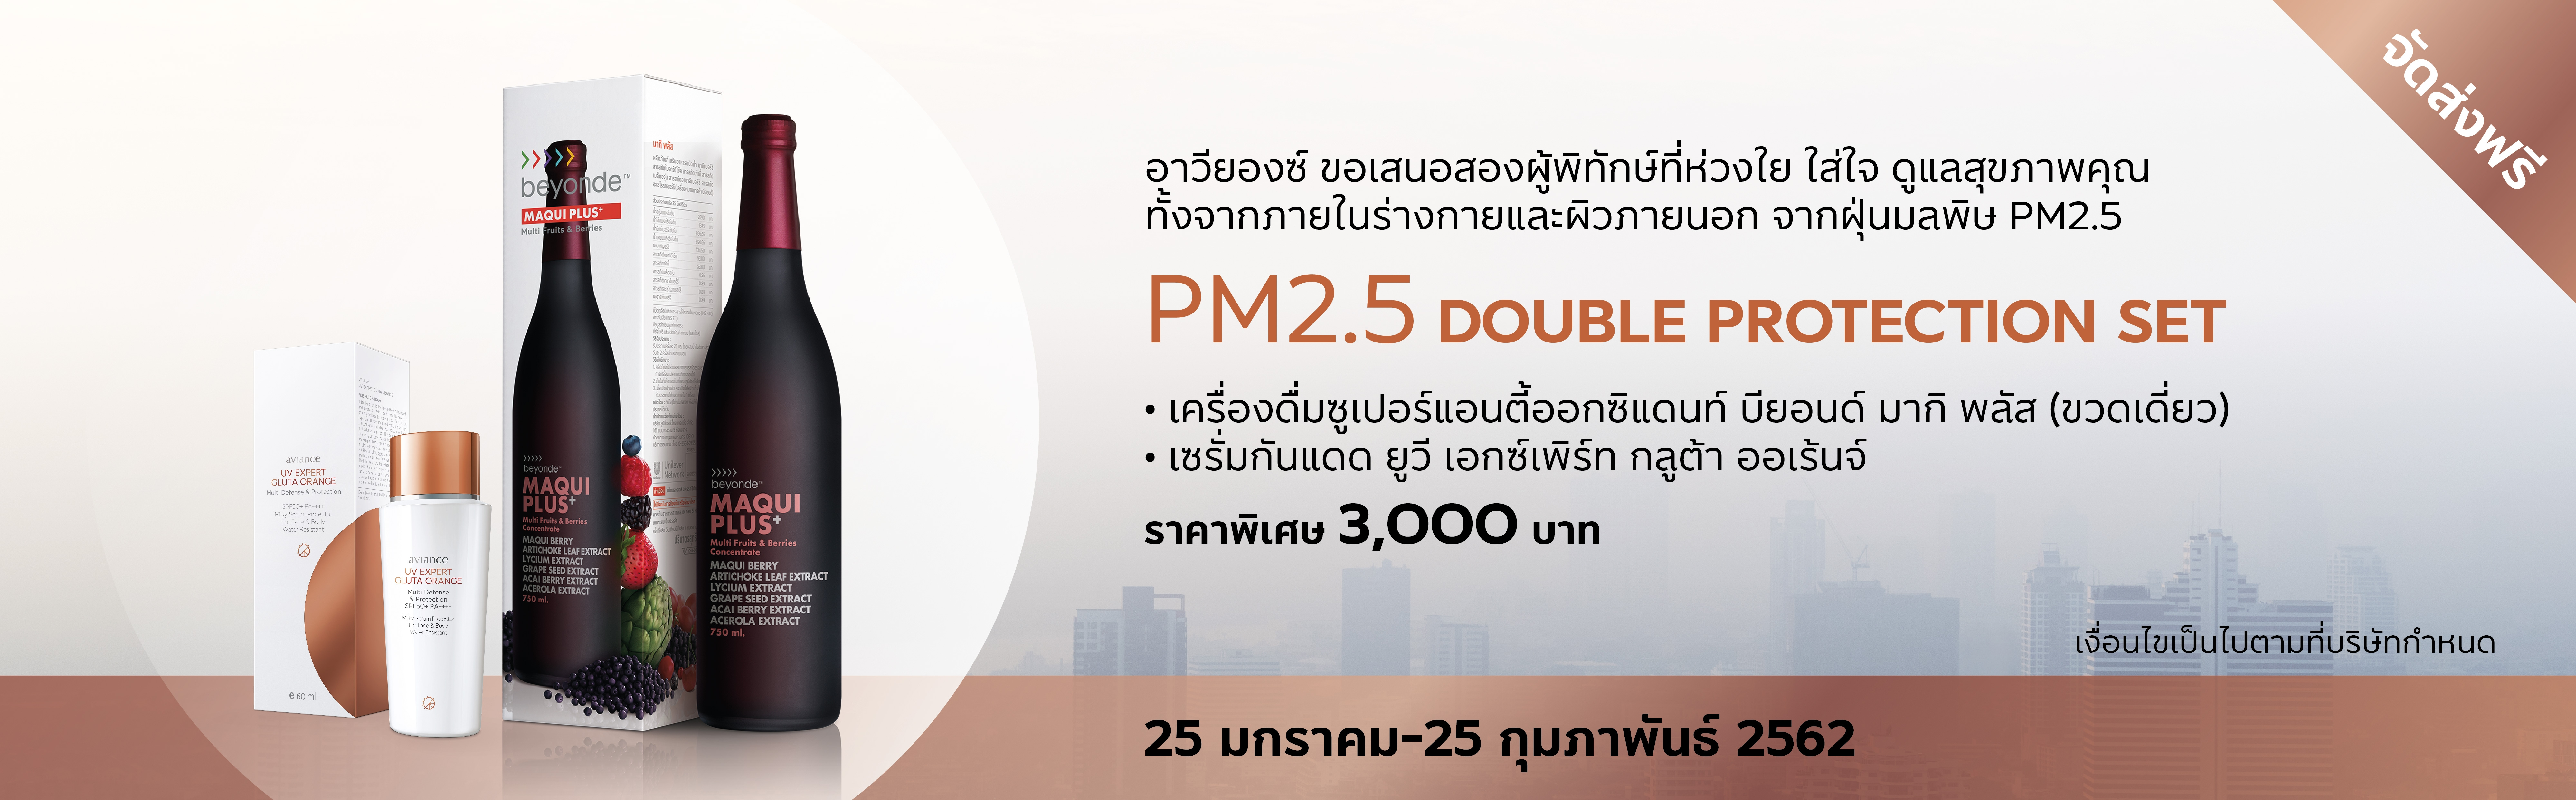 PM 2.5 Double Protection Set 2019